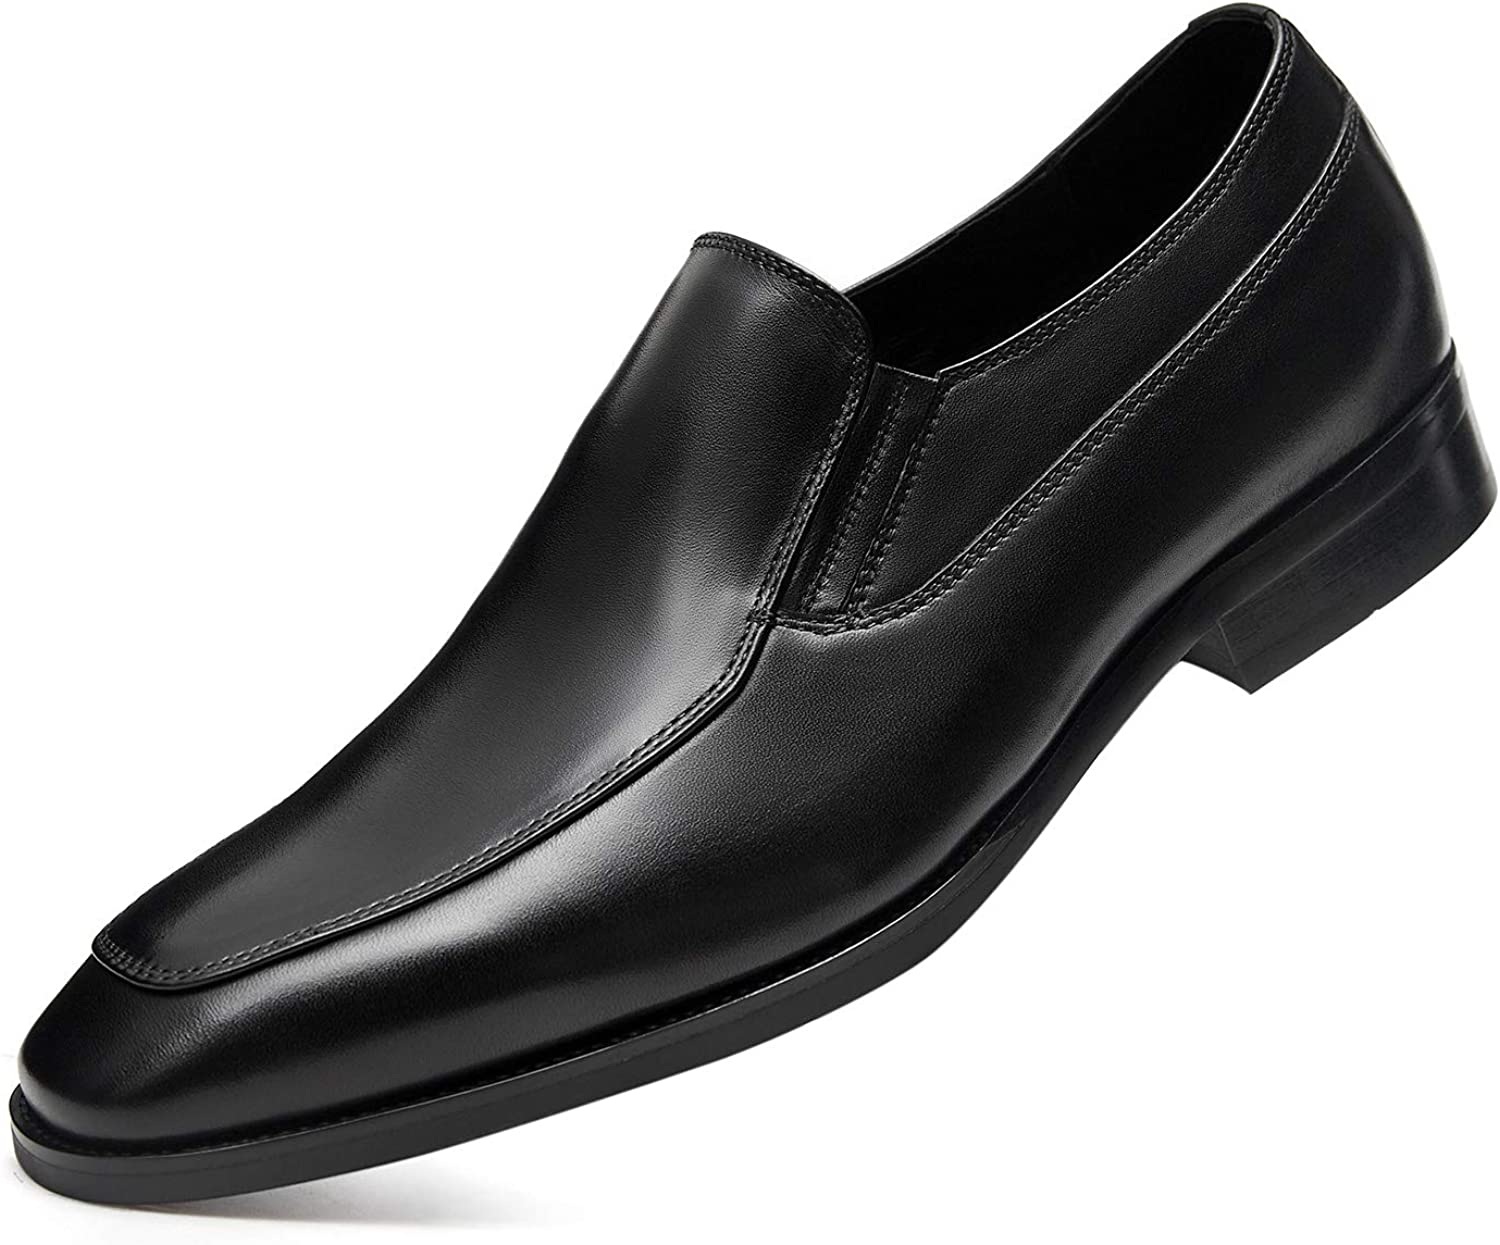 GIFENNSE Men's Dress Shoes Slip-on Loafers Leather Formal Shoes for Men